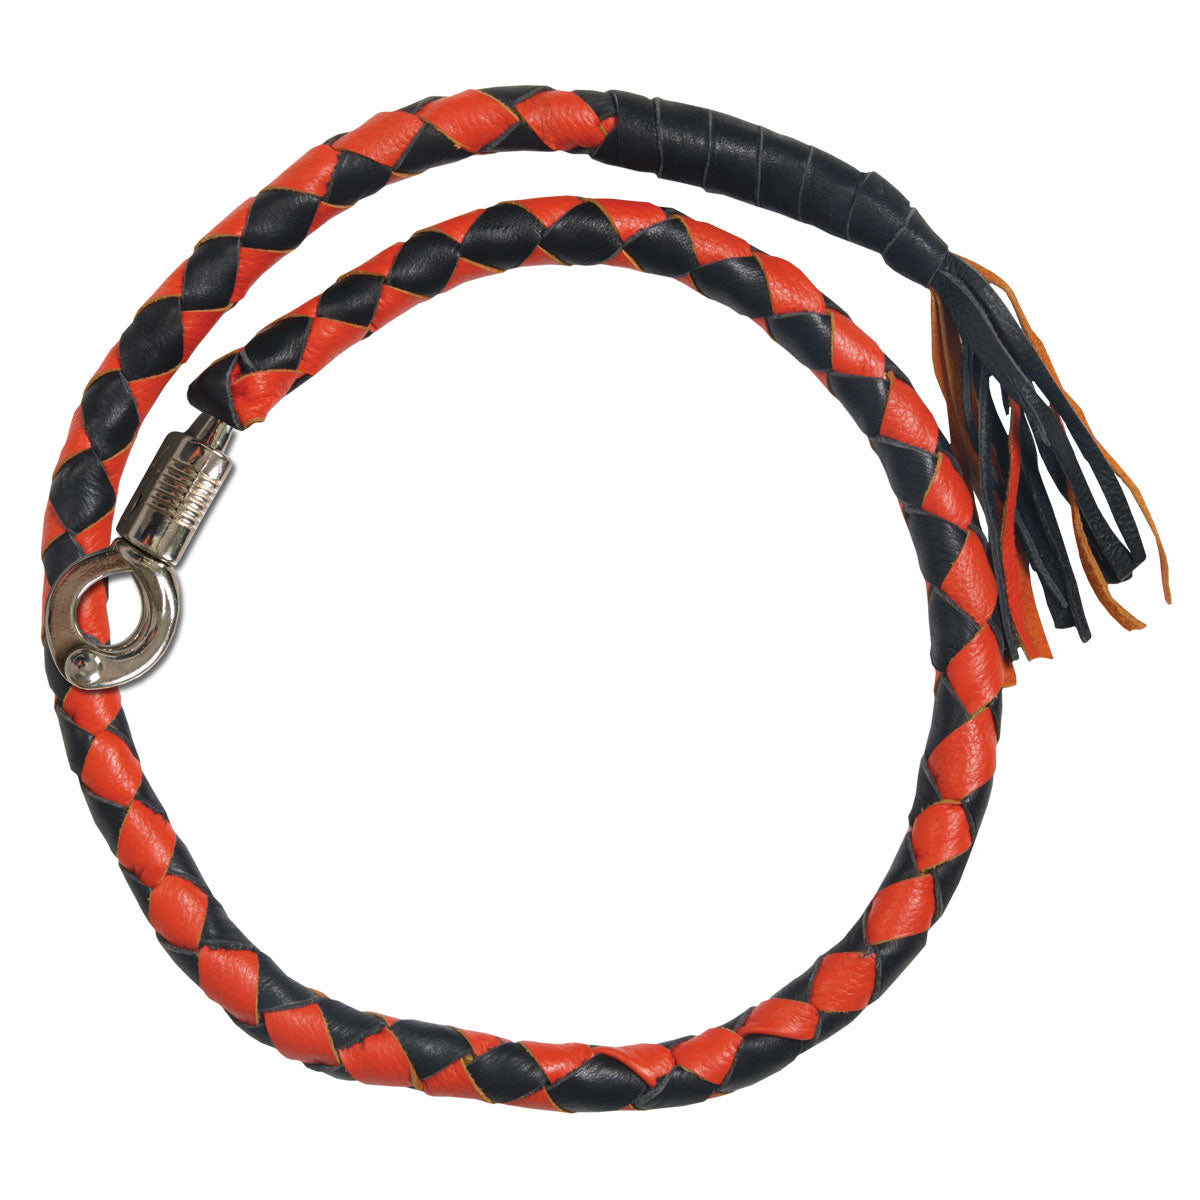 Hot Leathers MWH1104 'Get Back' Genuine Black and Orange Leather Whip